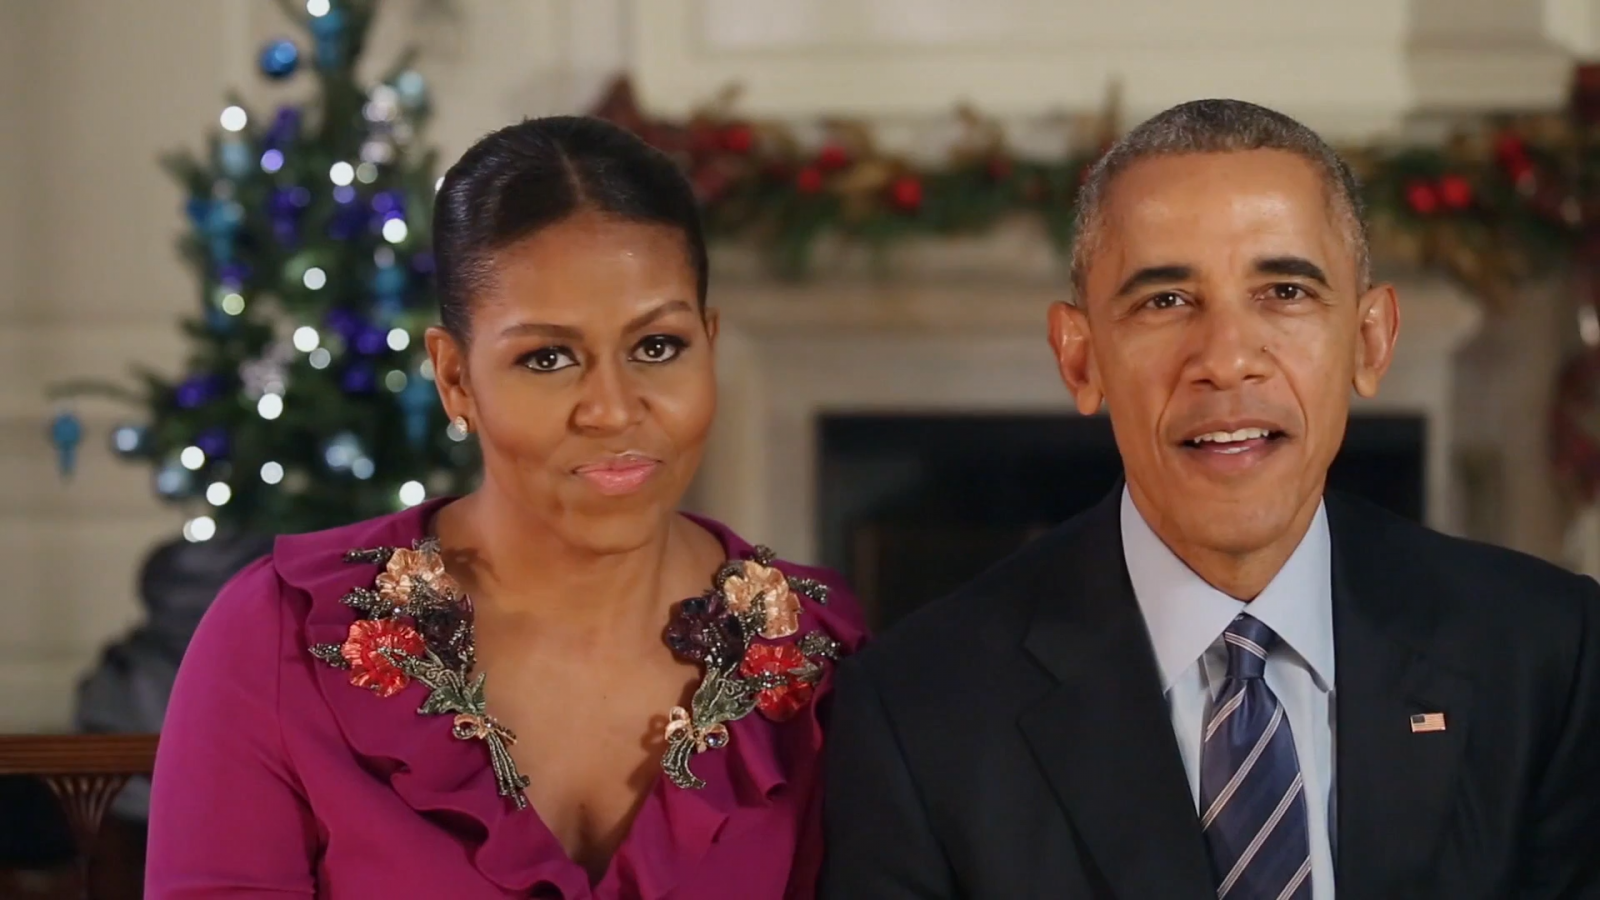 The Obamas deliver their final Christmas message to the nation